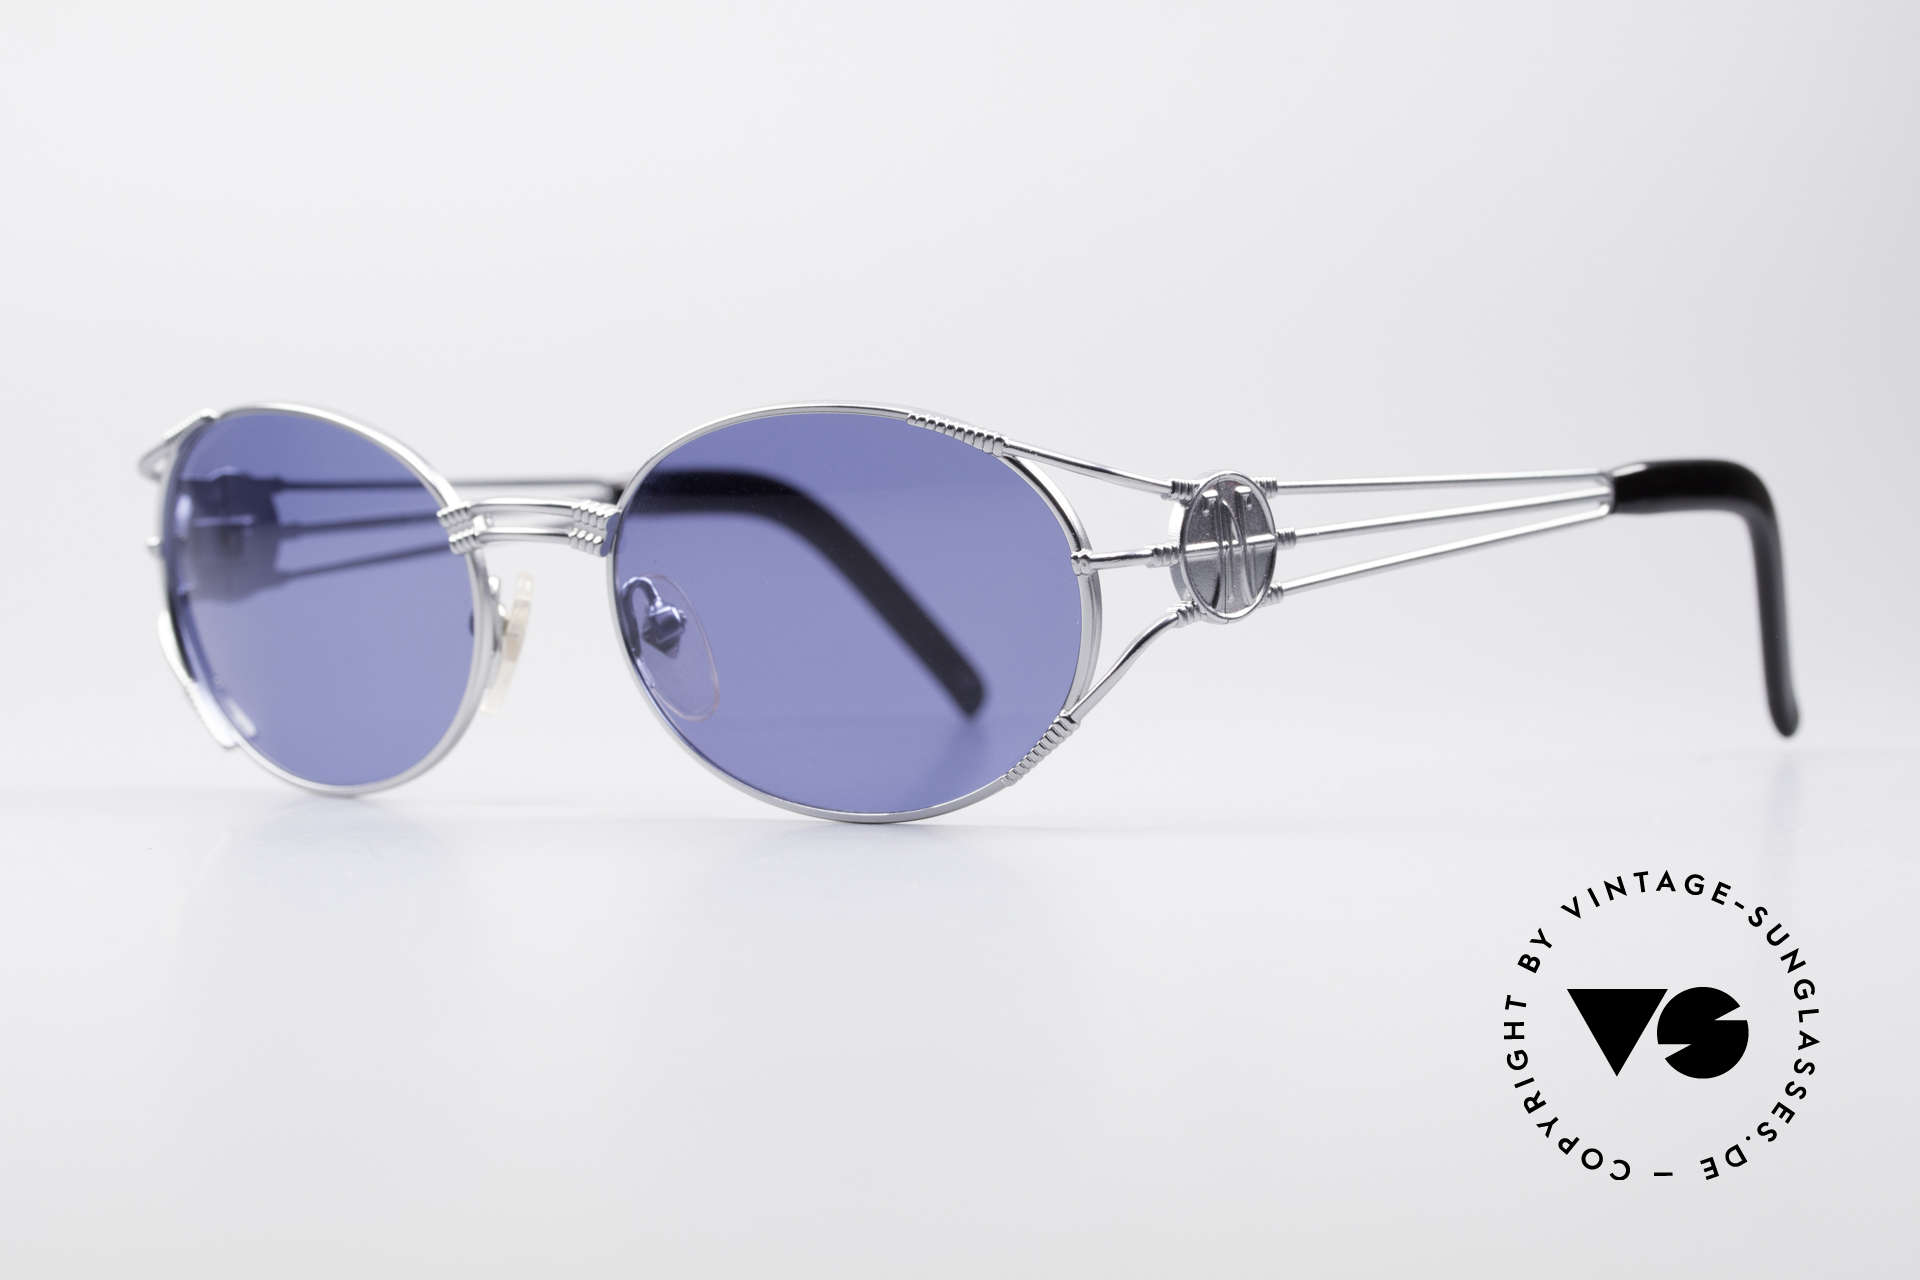 "Jean Paul Gaultier 58-5106 JPG Oval Steampunk Shades, often called as ""Steampunk Shades"" in these days, Made for Men and Women"